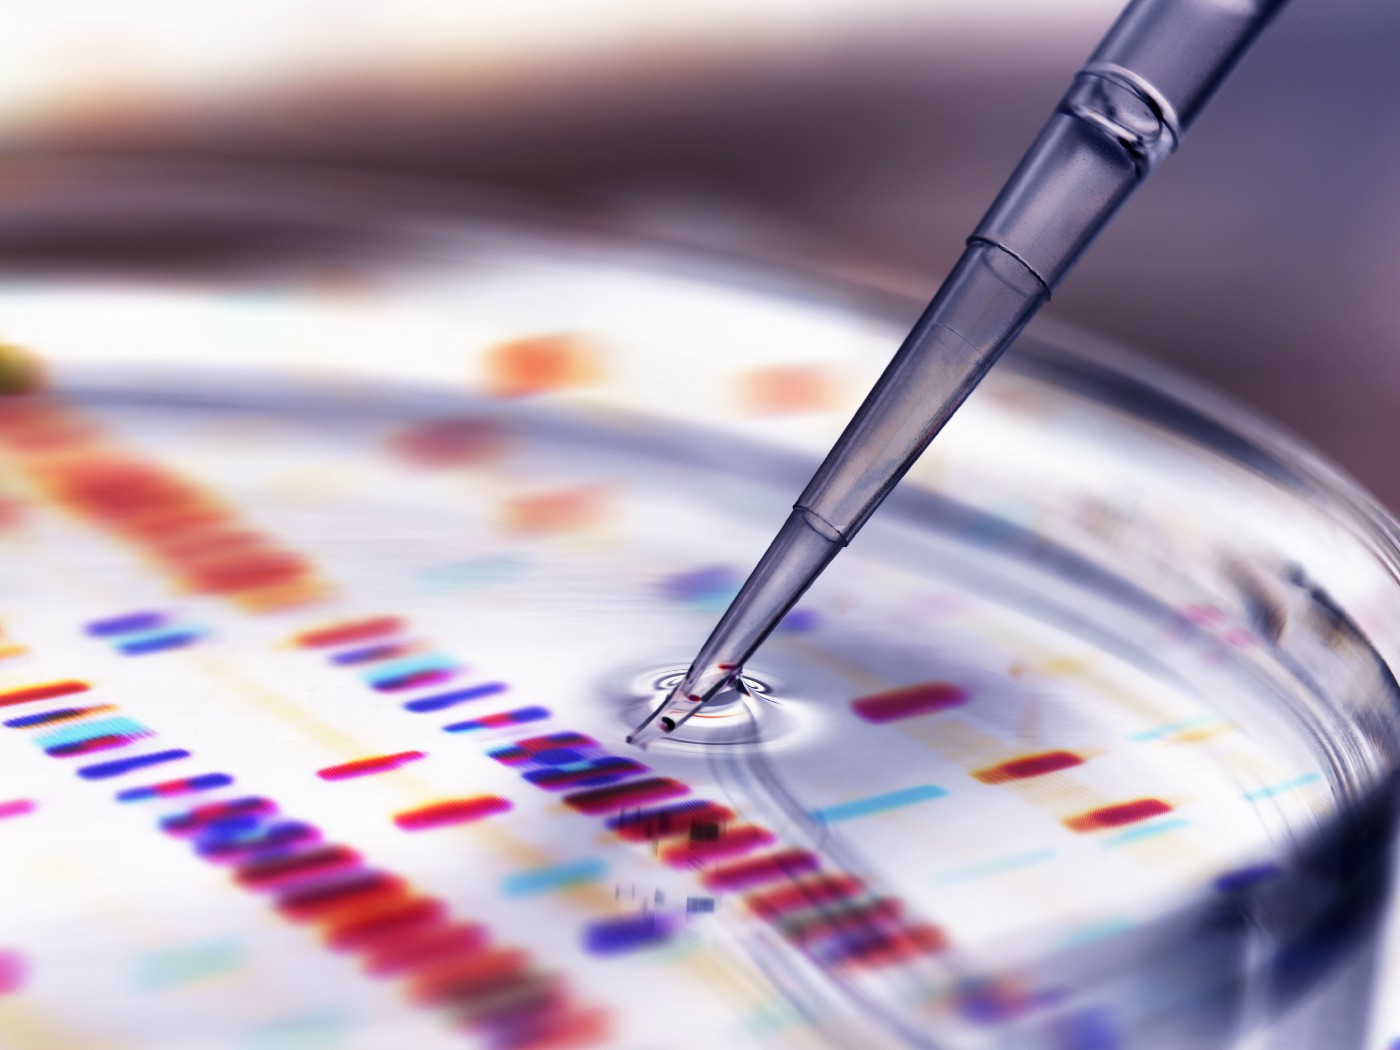 A pipette adds a sample to petri dish with DNA profiles in background.